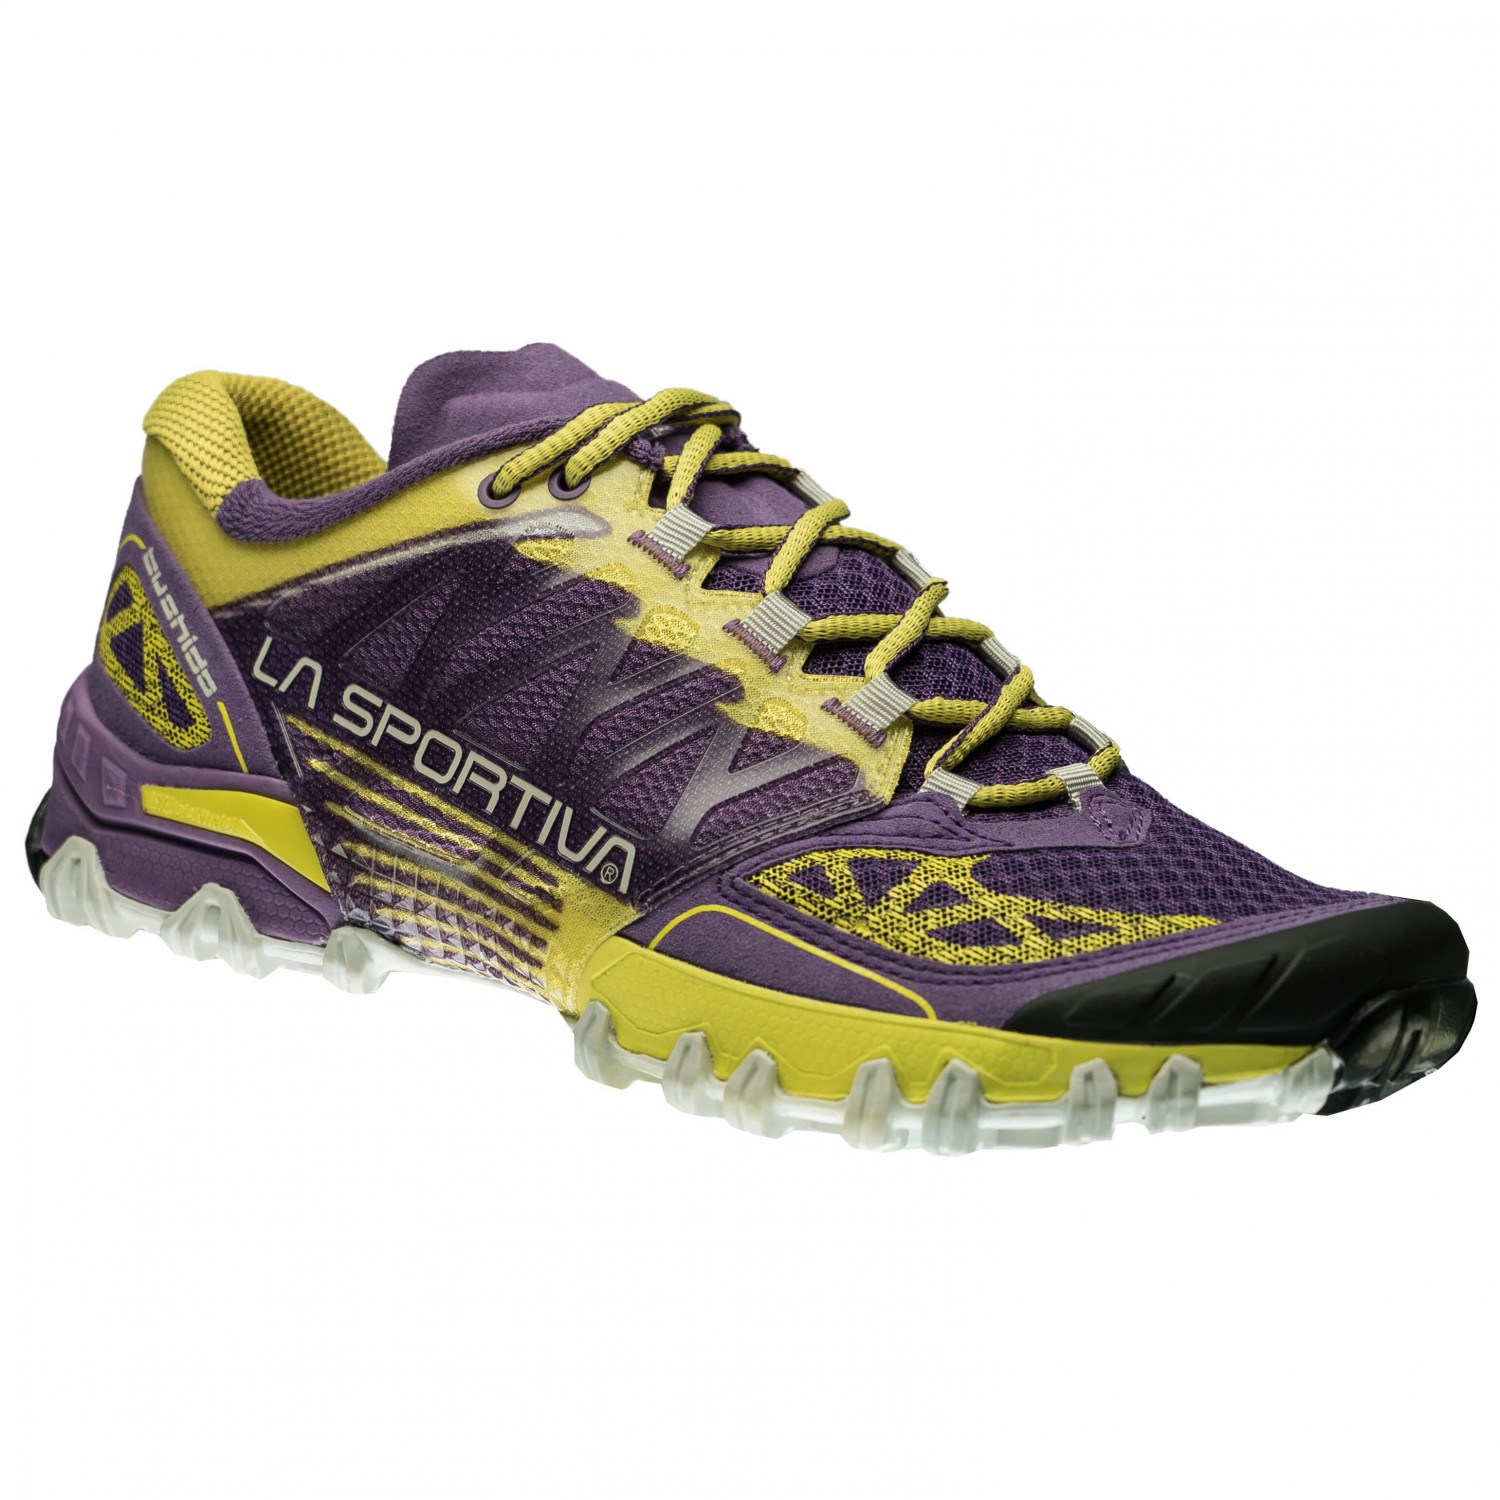 Scarpa Women S Trail Running Shoes